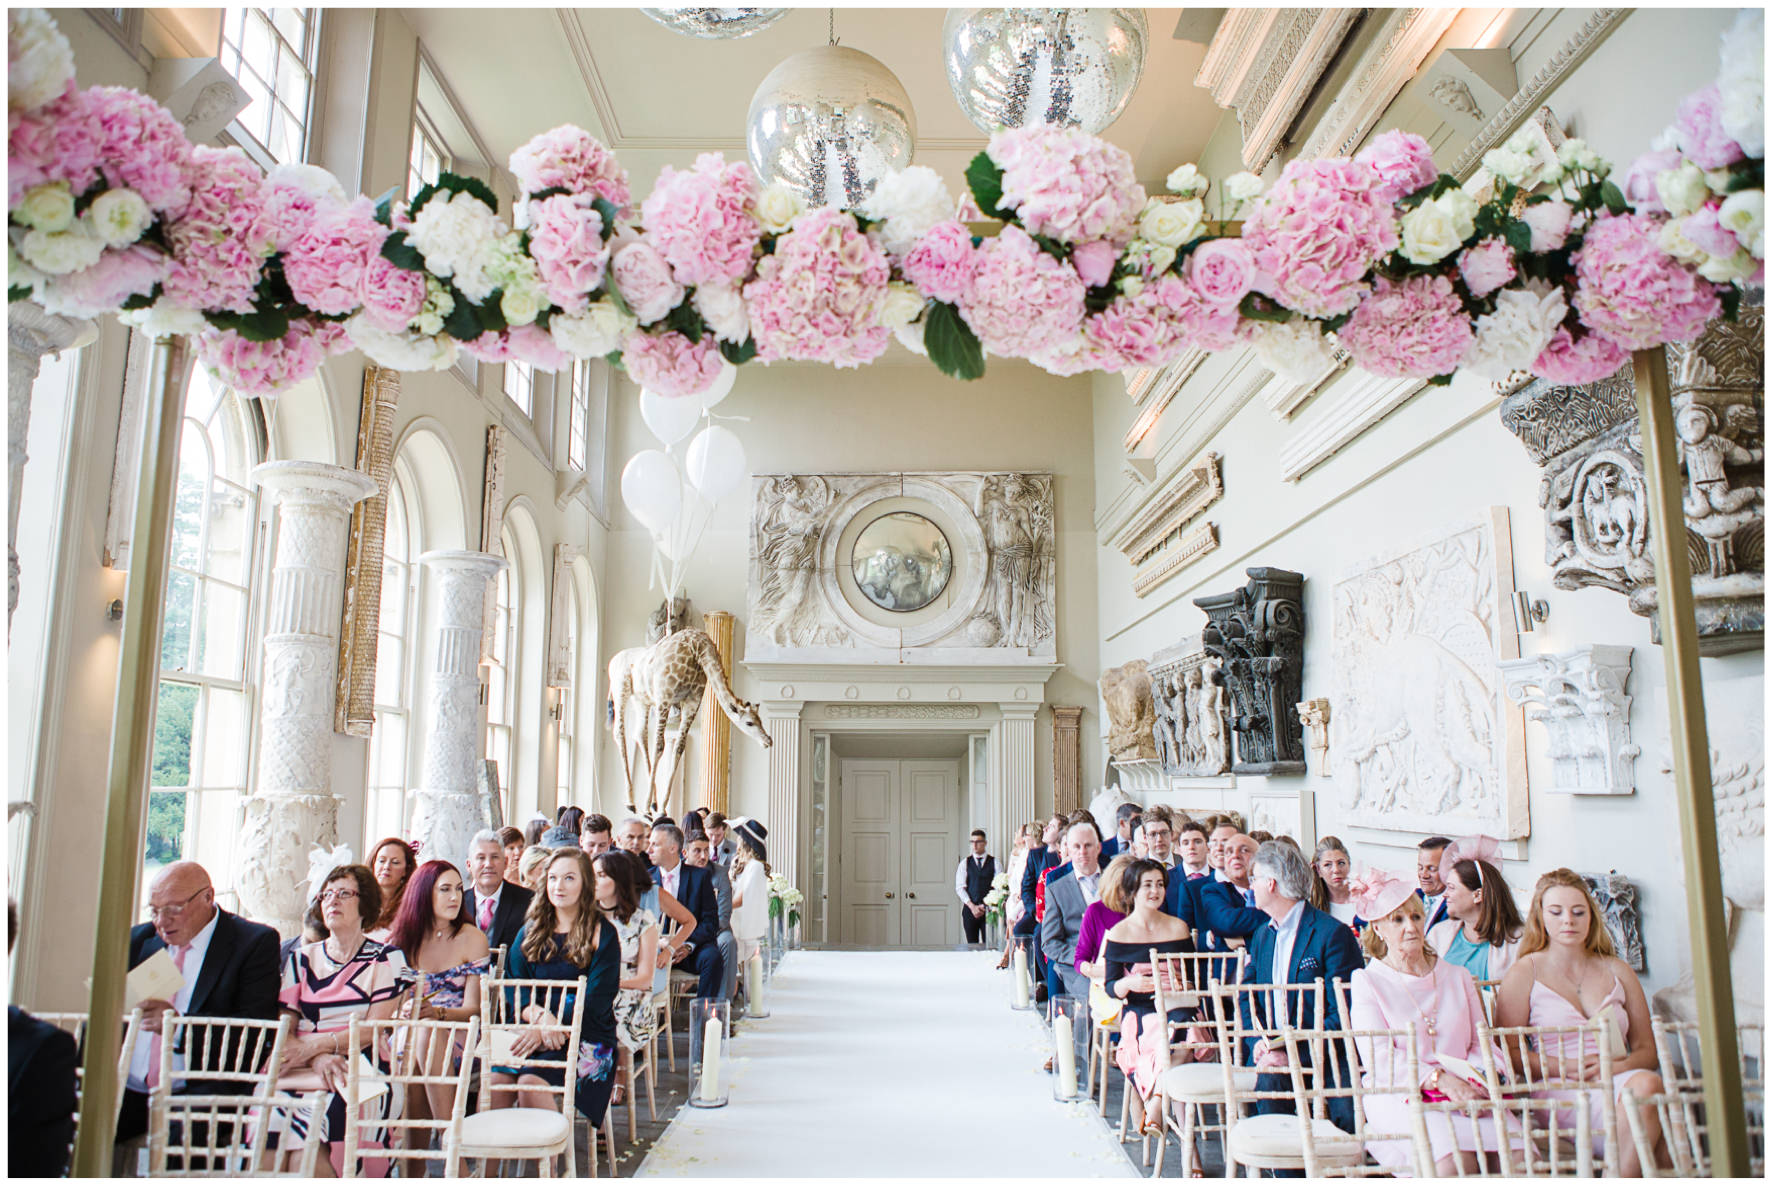 Lucy Davenport Photography, Aynhoe Park, Oxfordshire, wedding venue, Rock My Wedding, Orangery, floral chuppa